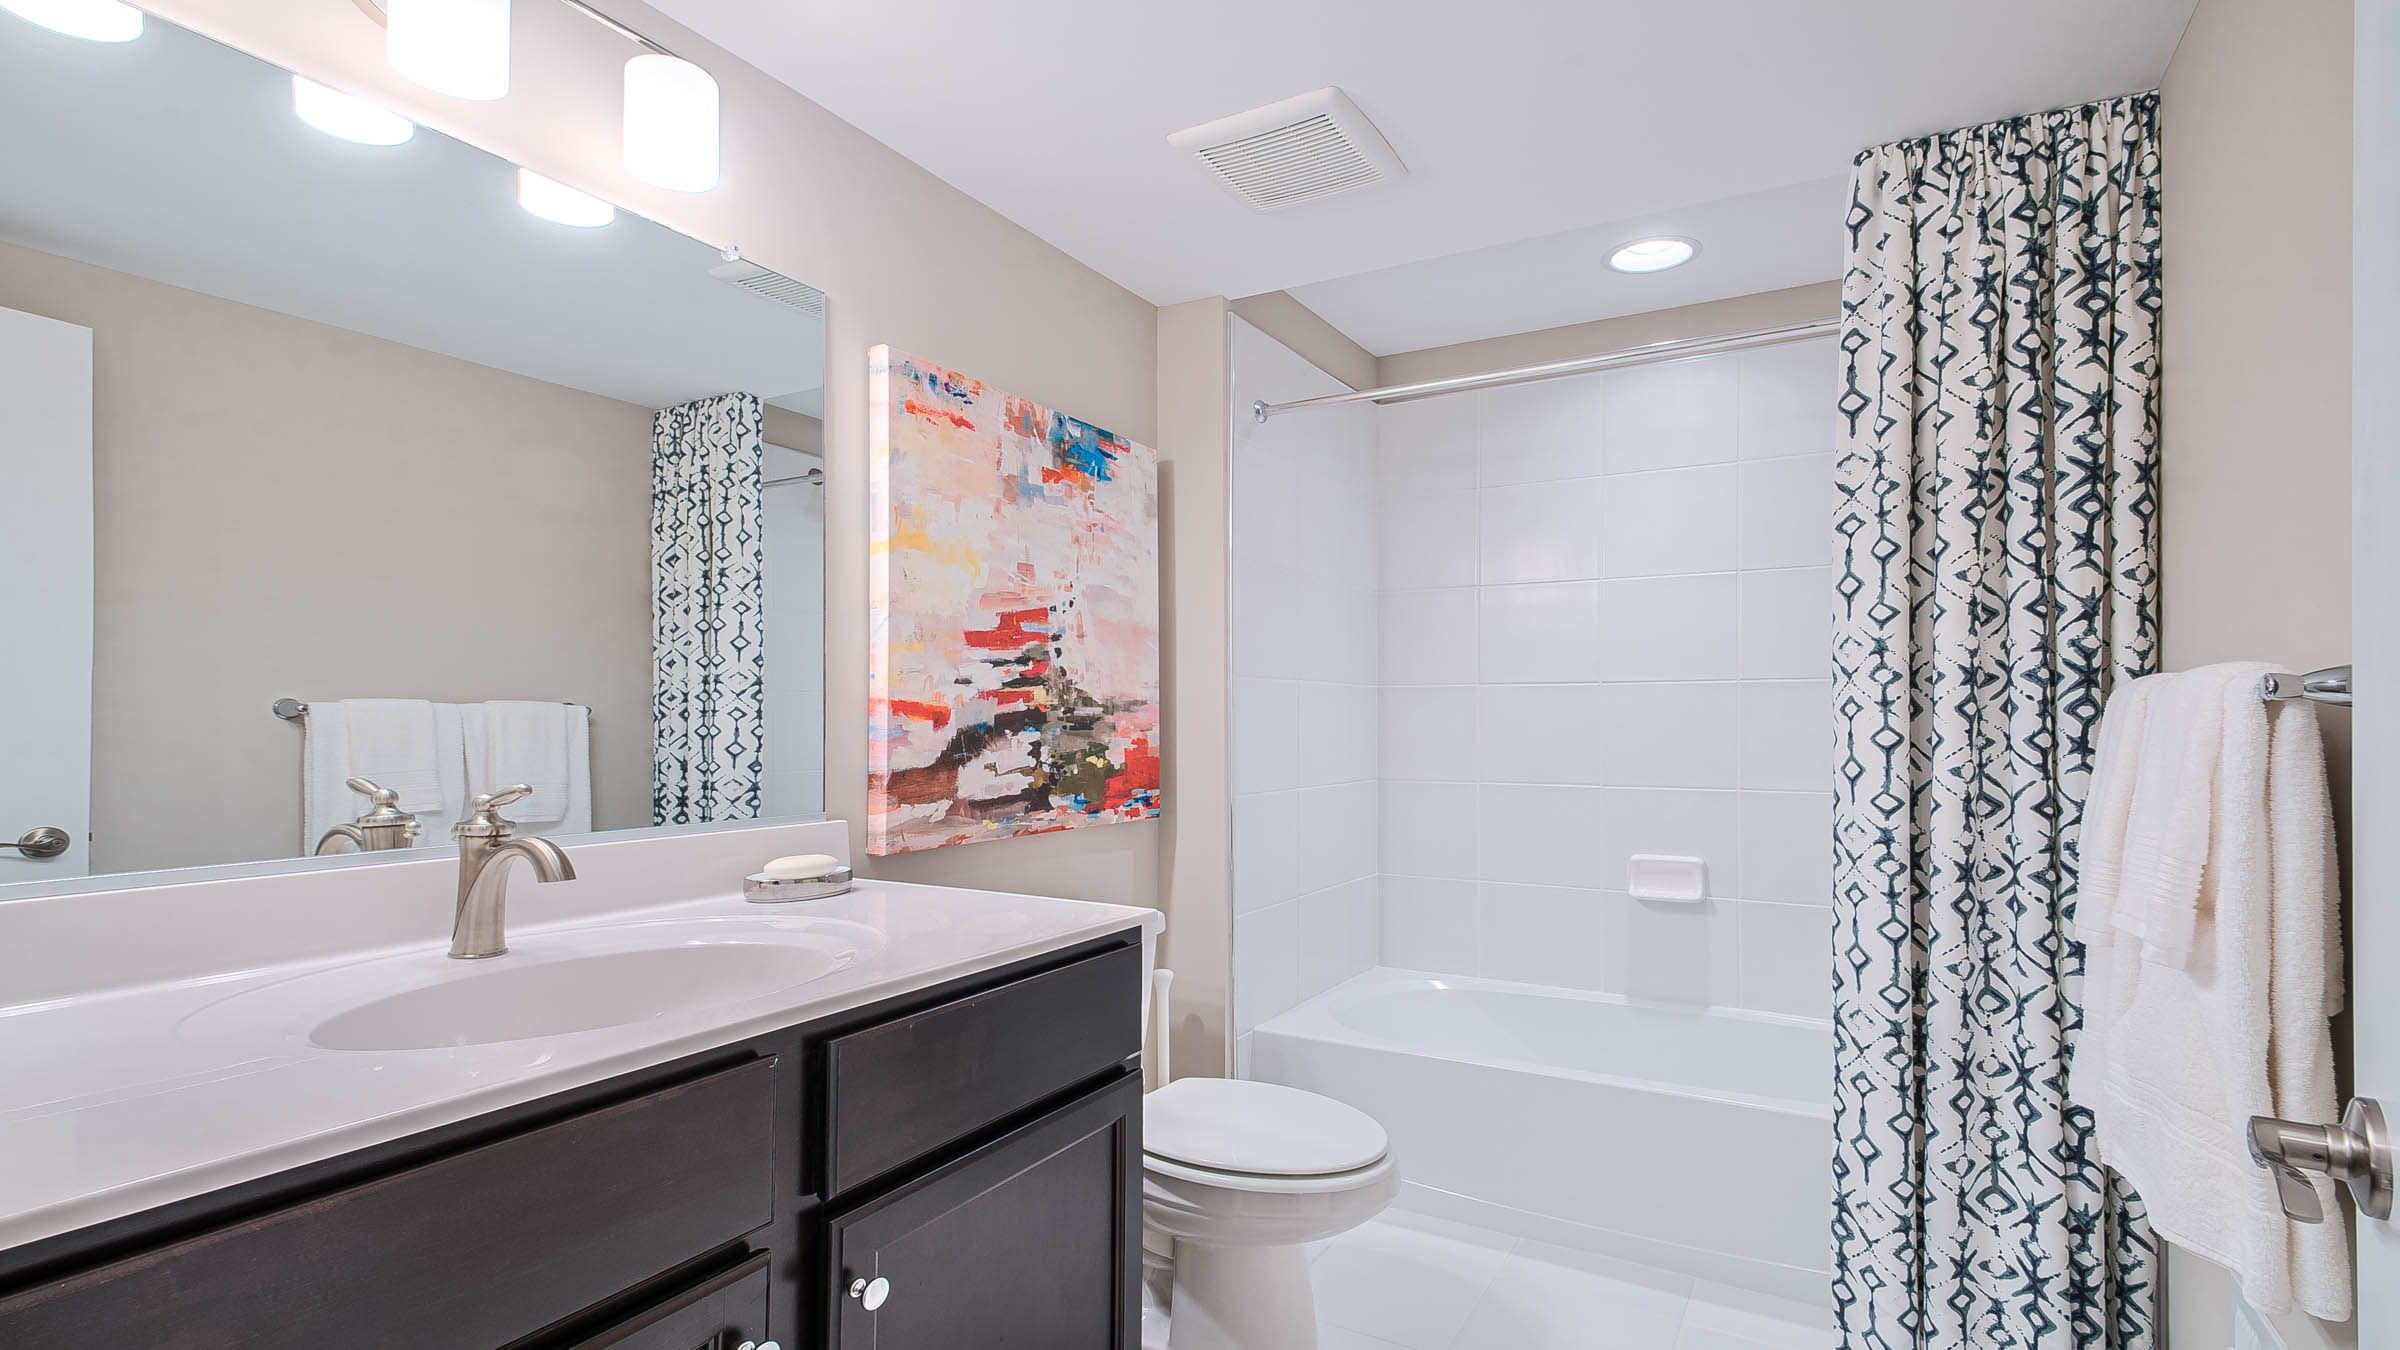 Bathroom featured in The Ashcroft By Wormald Homes in Washington, MD